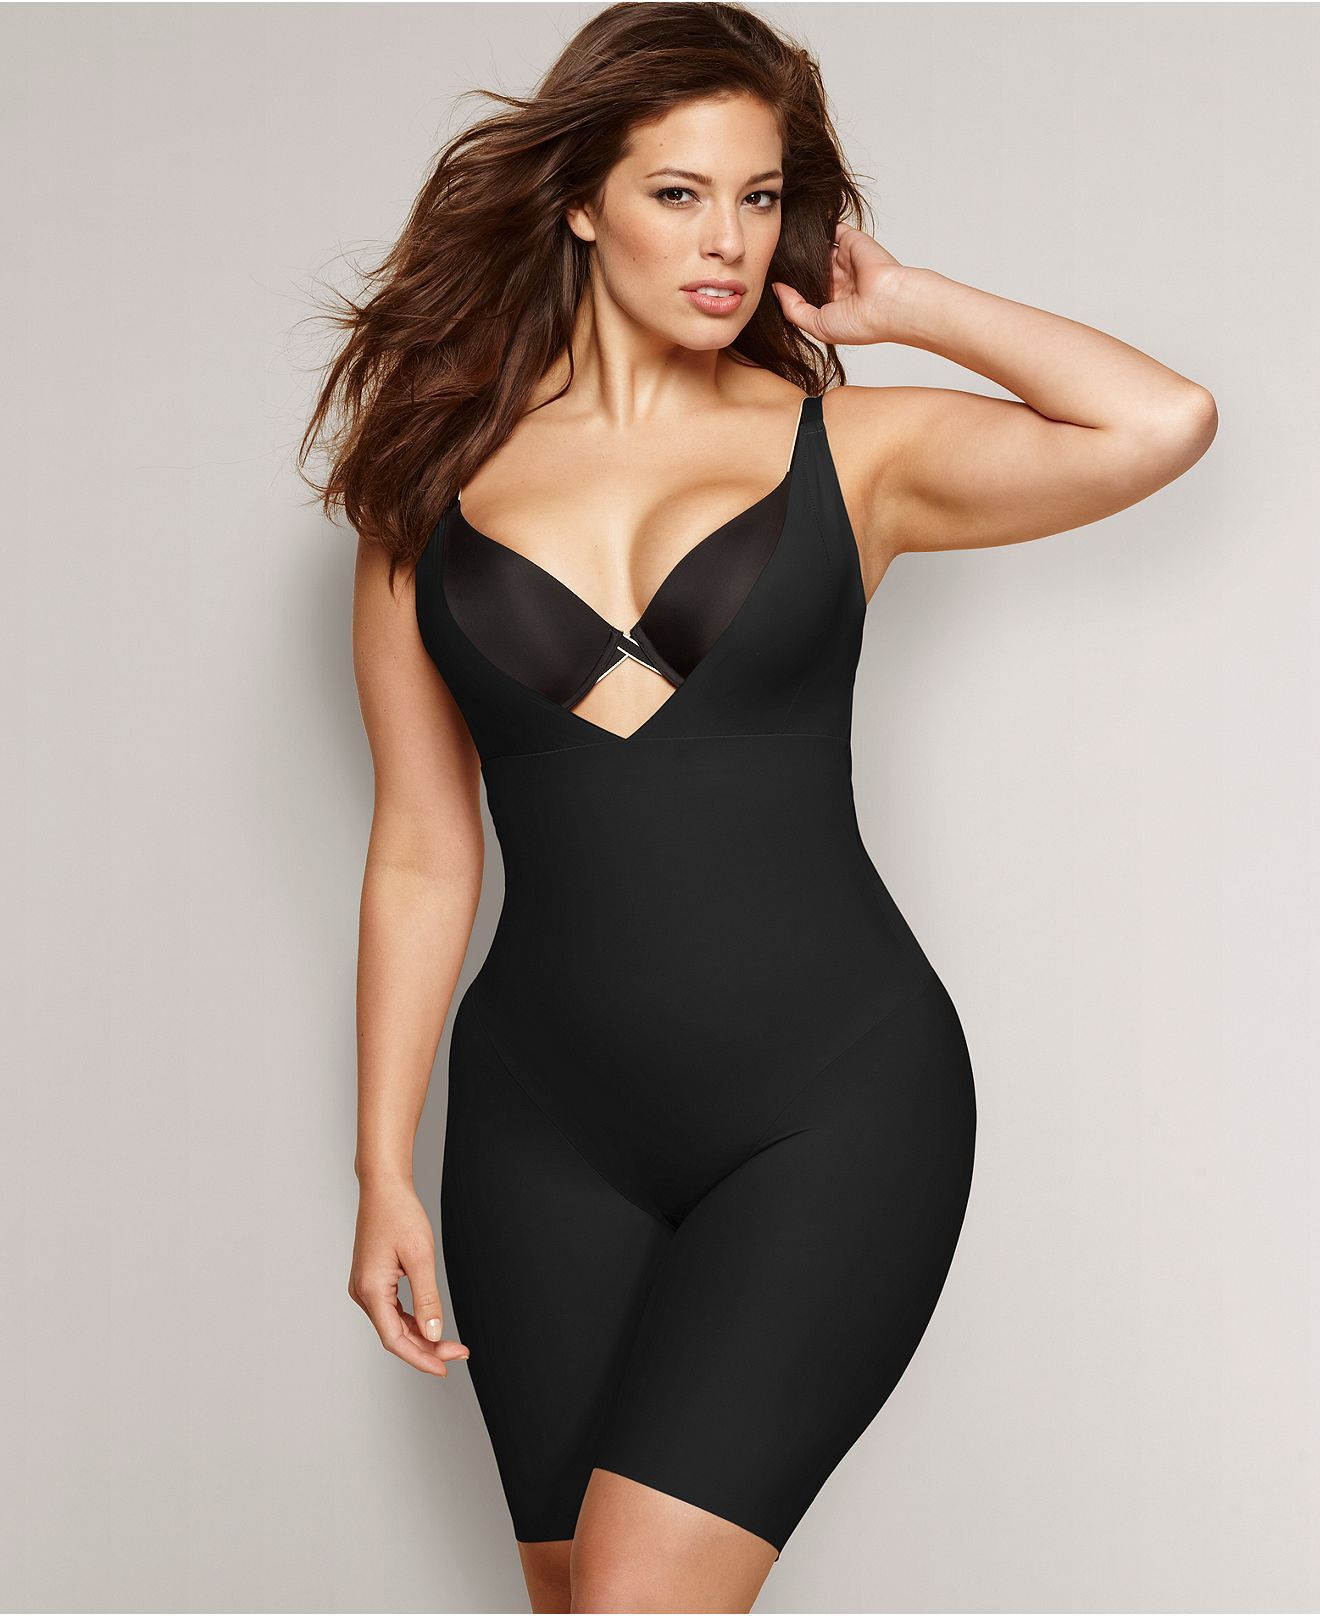 1fd46f37dbd96 Flexees by Maidenform Plus Size Shapewear